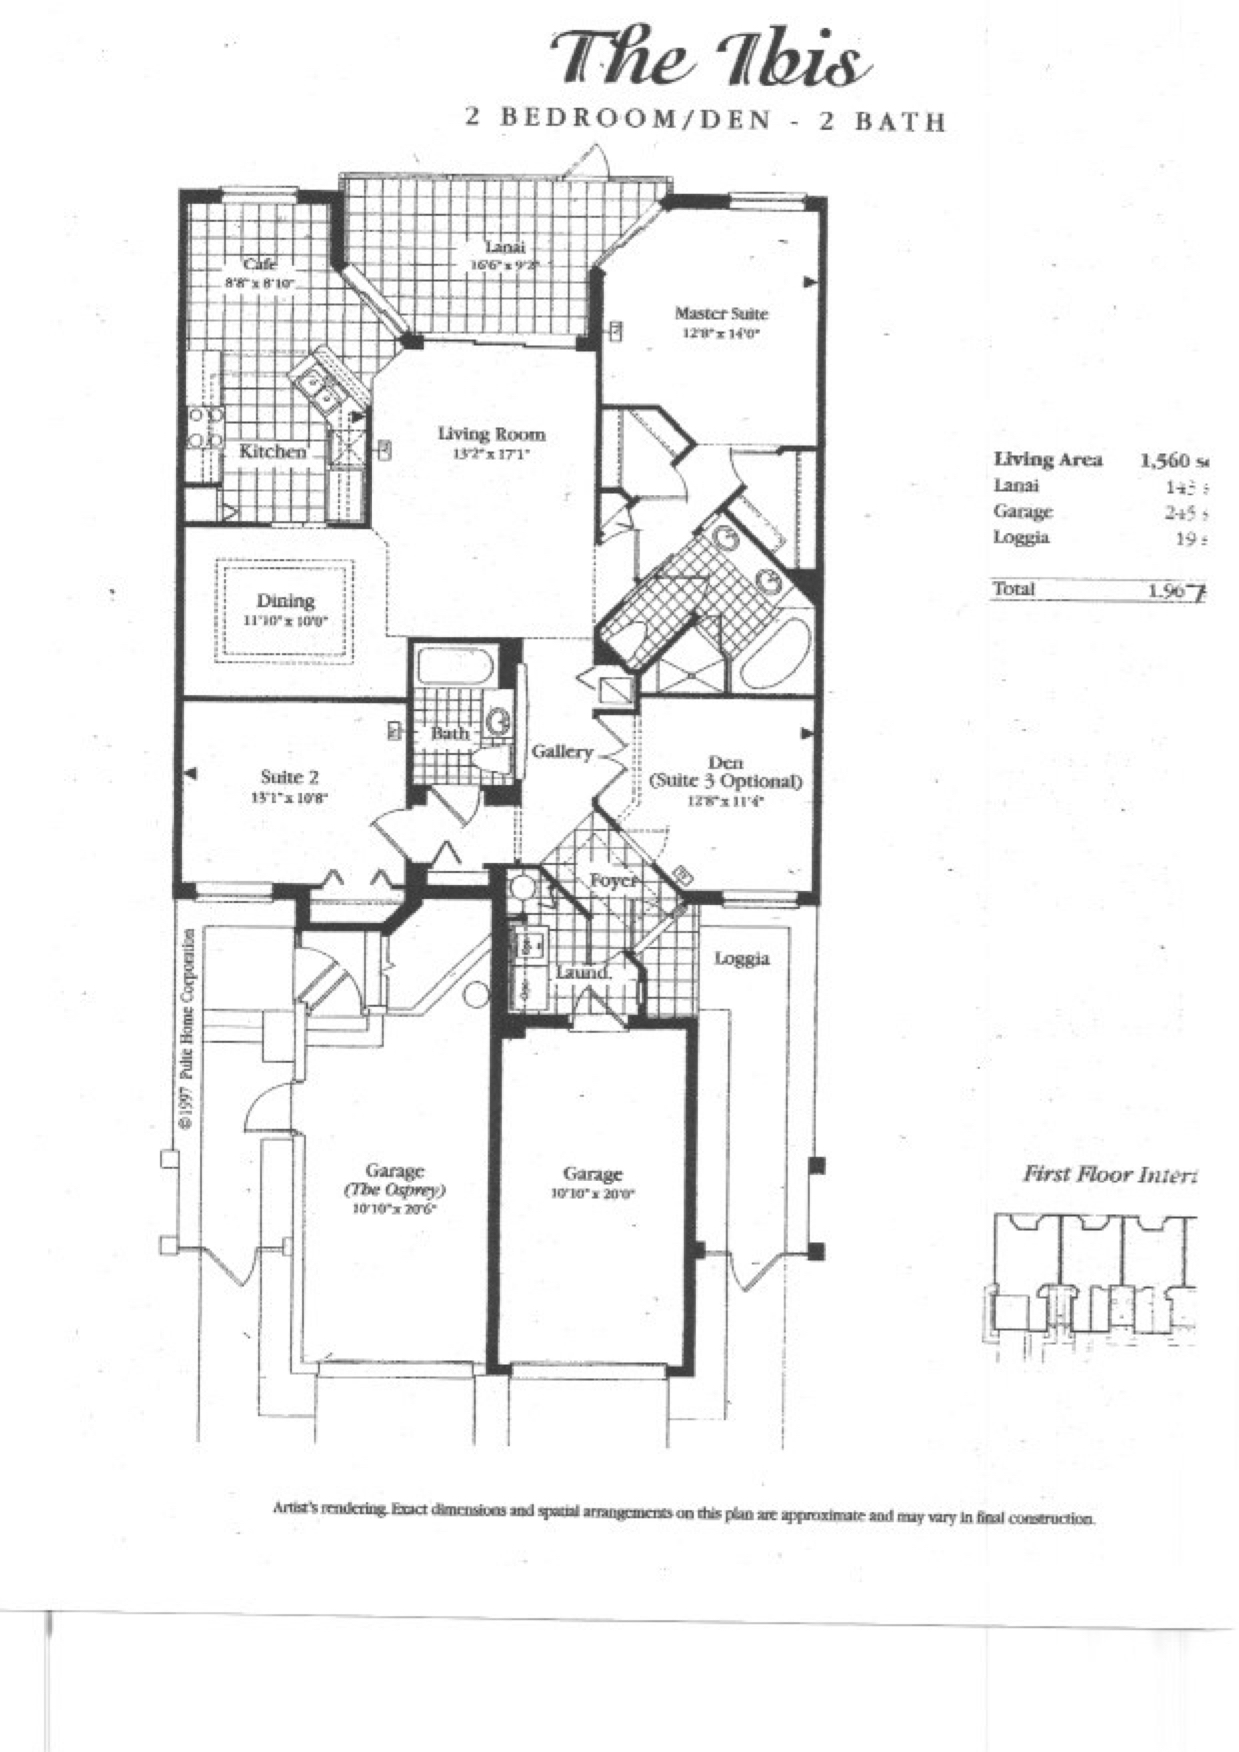 Grande Cay Downstairs Floor Plan